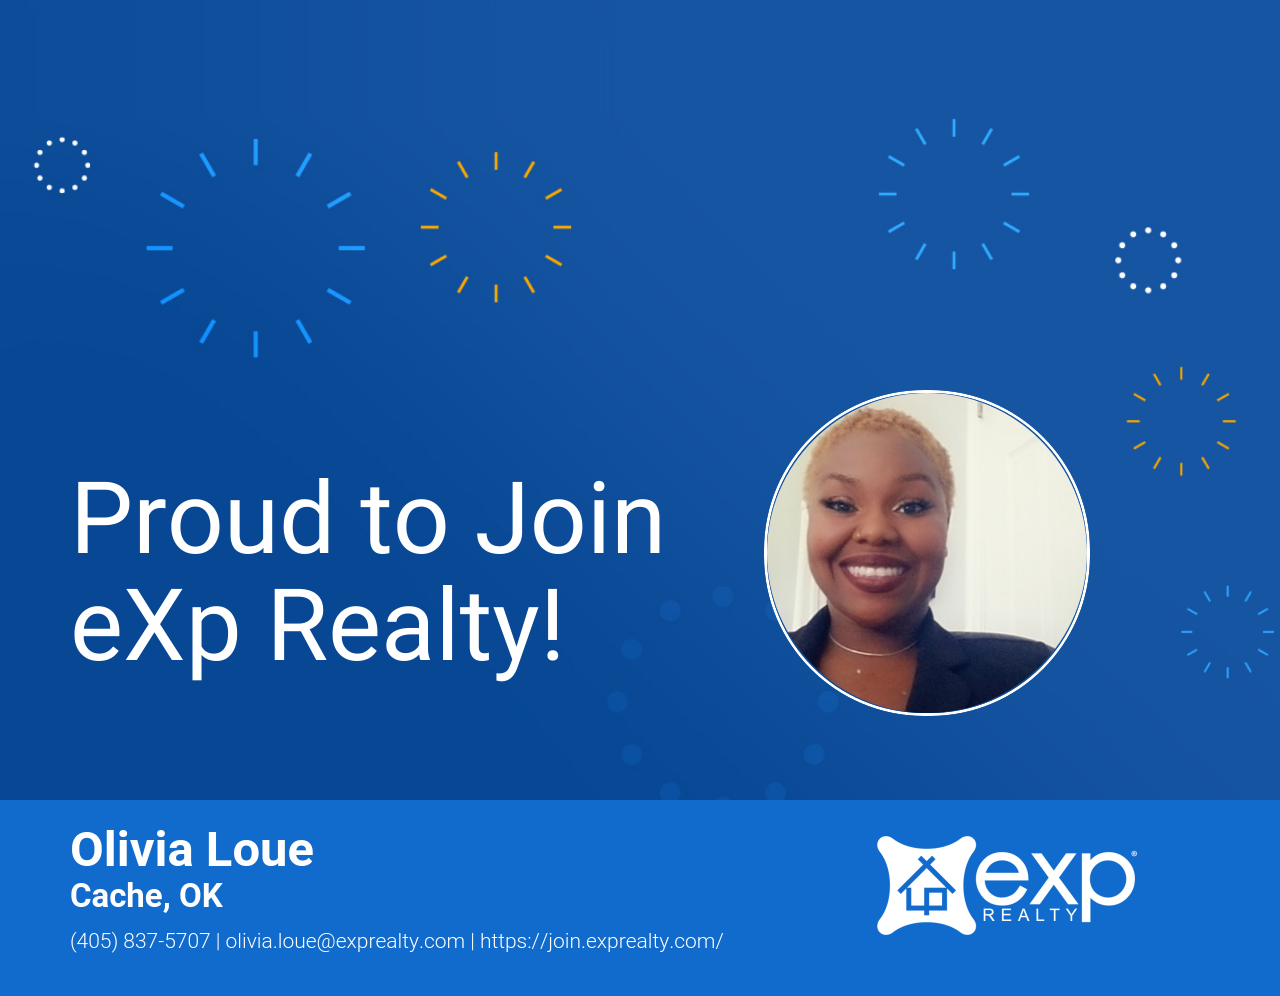 Olivia Loue Joined eXp Realty!